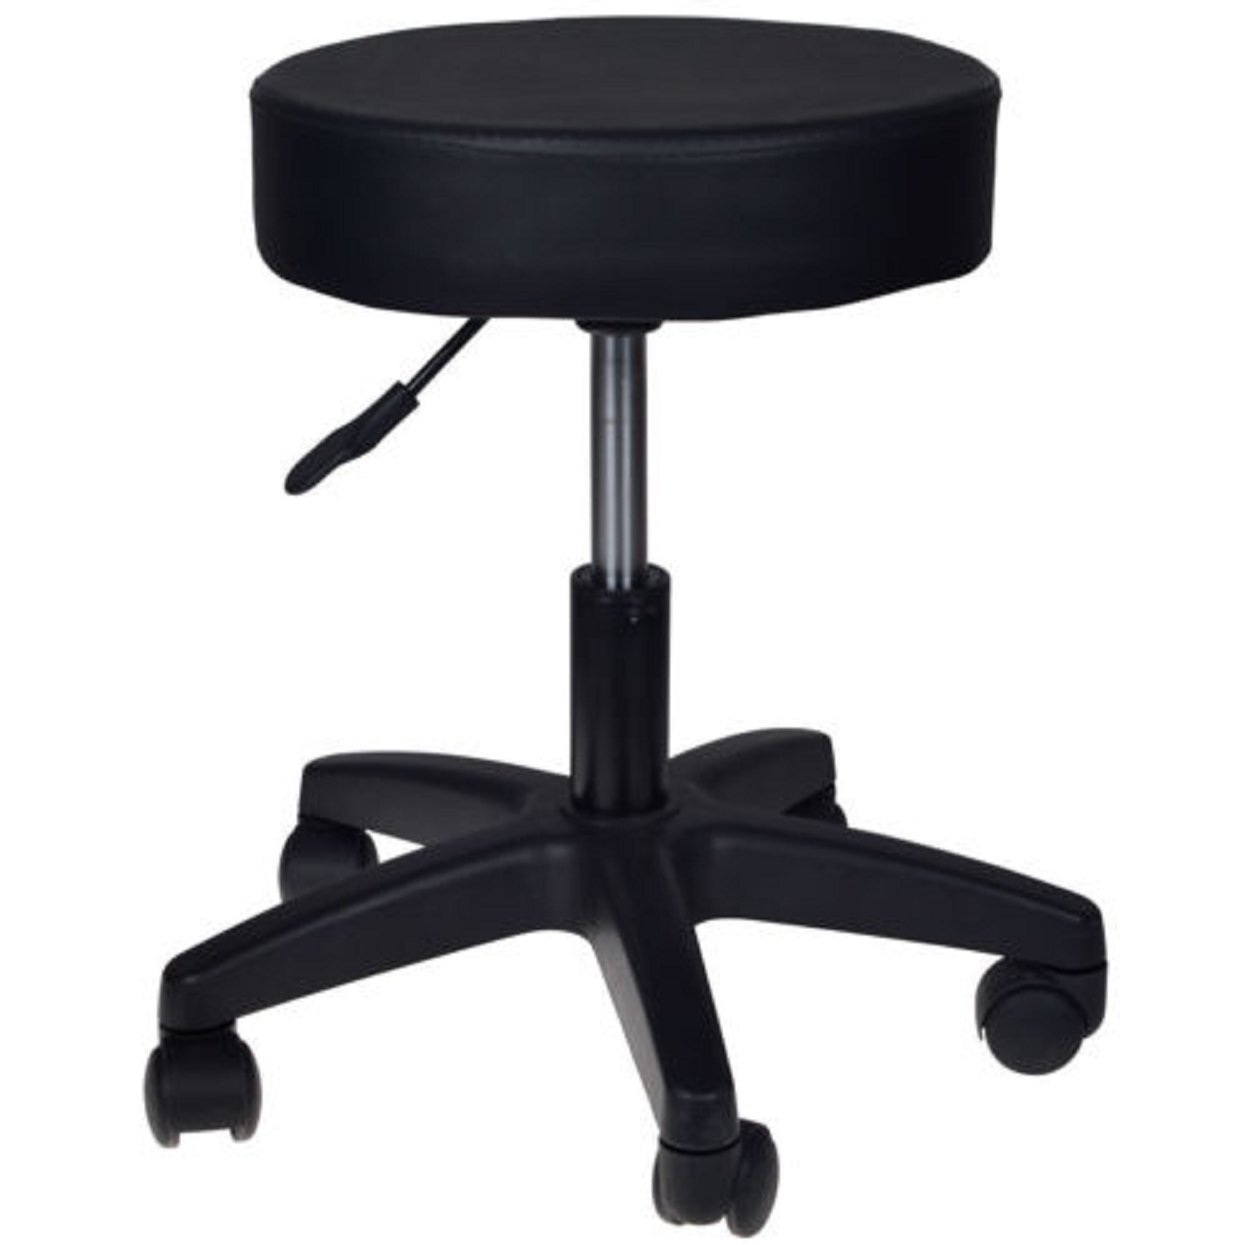 Amazon: Black Stool Hydraulic Step Adjustable Kitchen Vanity Kids Chair  Facial Salon Massage Spa Dental Swivel Rolling Chair: Kitchen & Dining